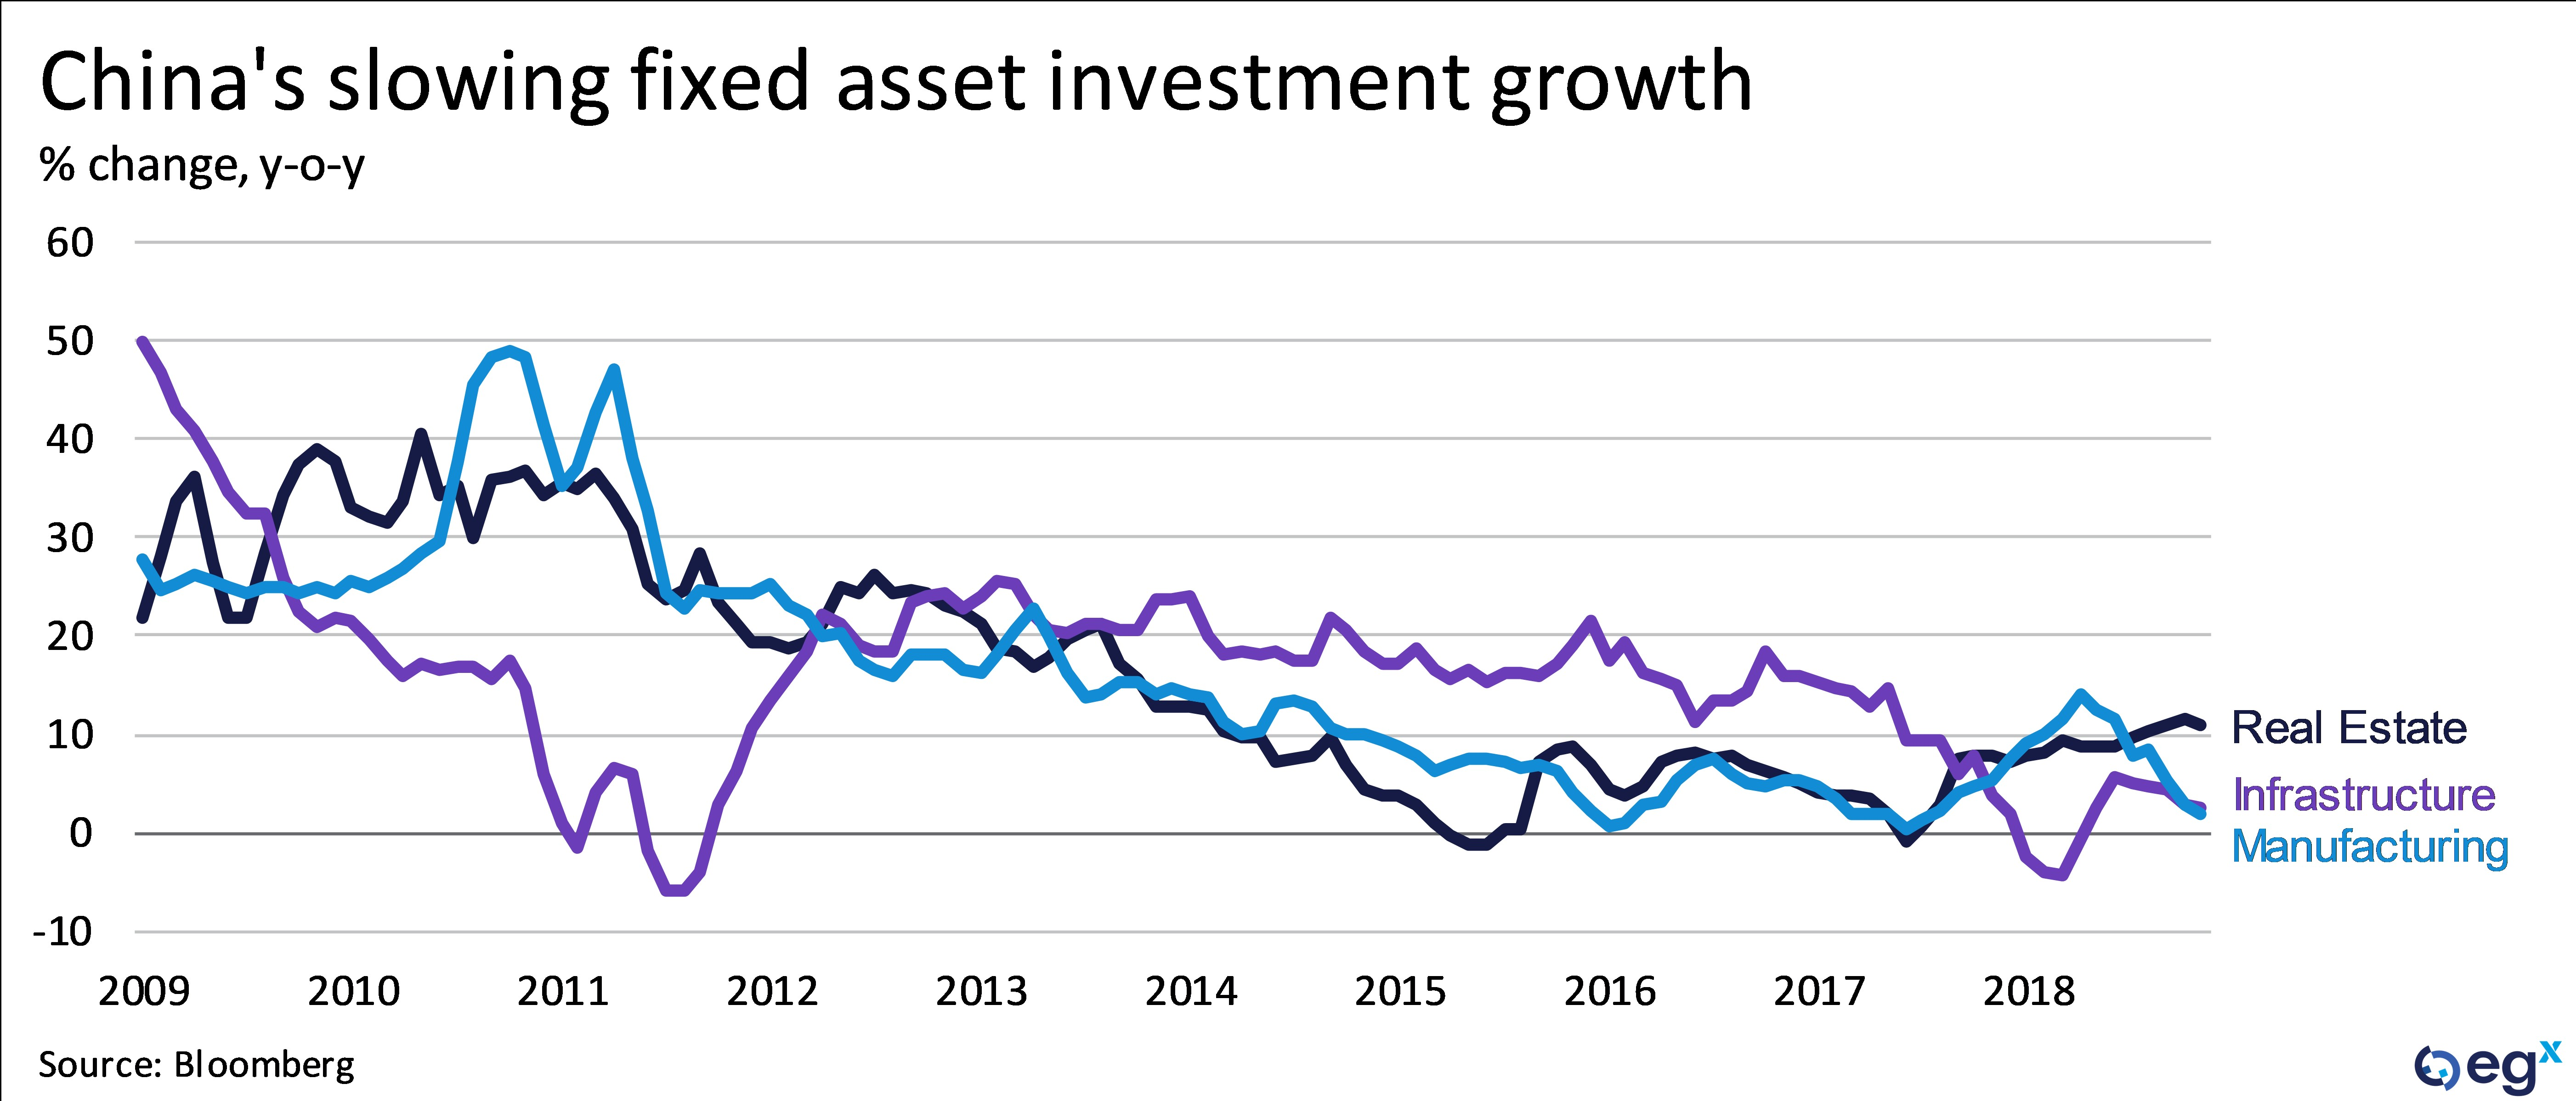 China's slowing fixed asset investment growth